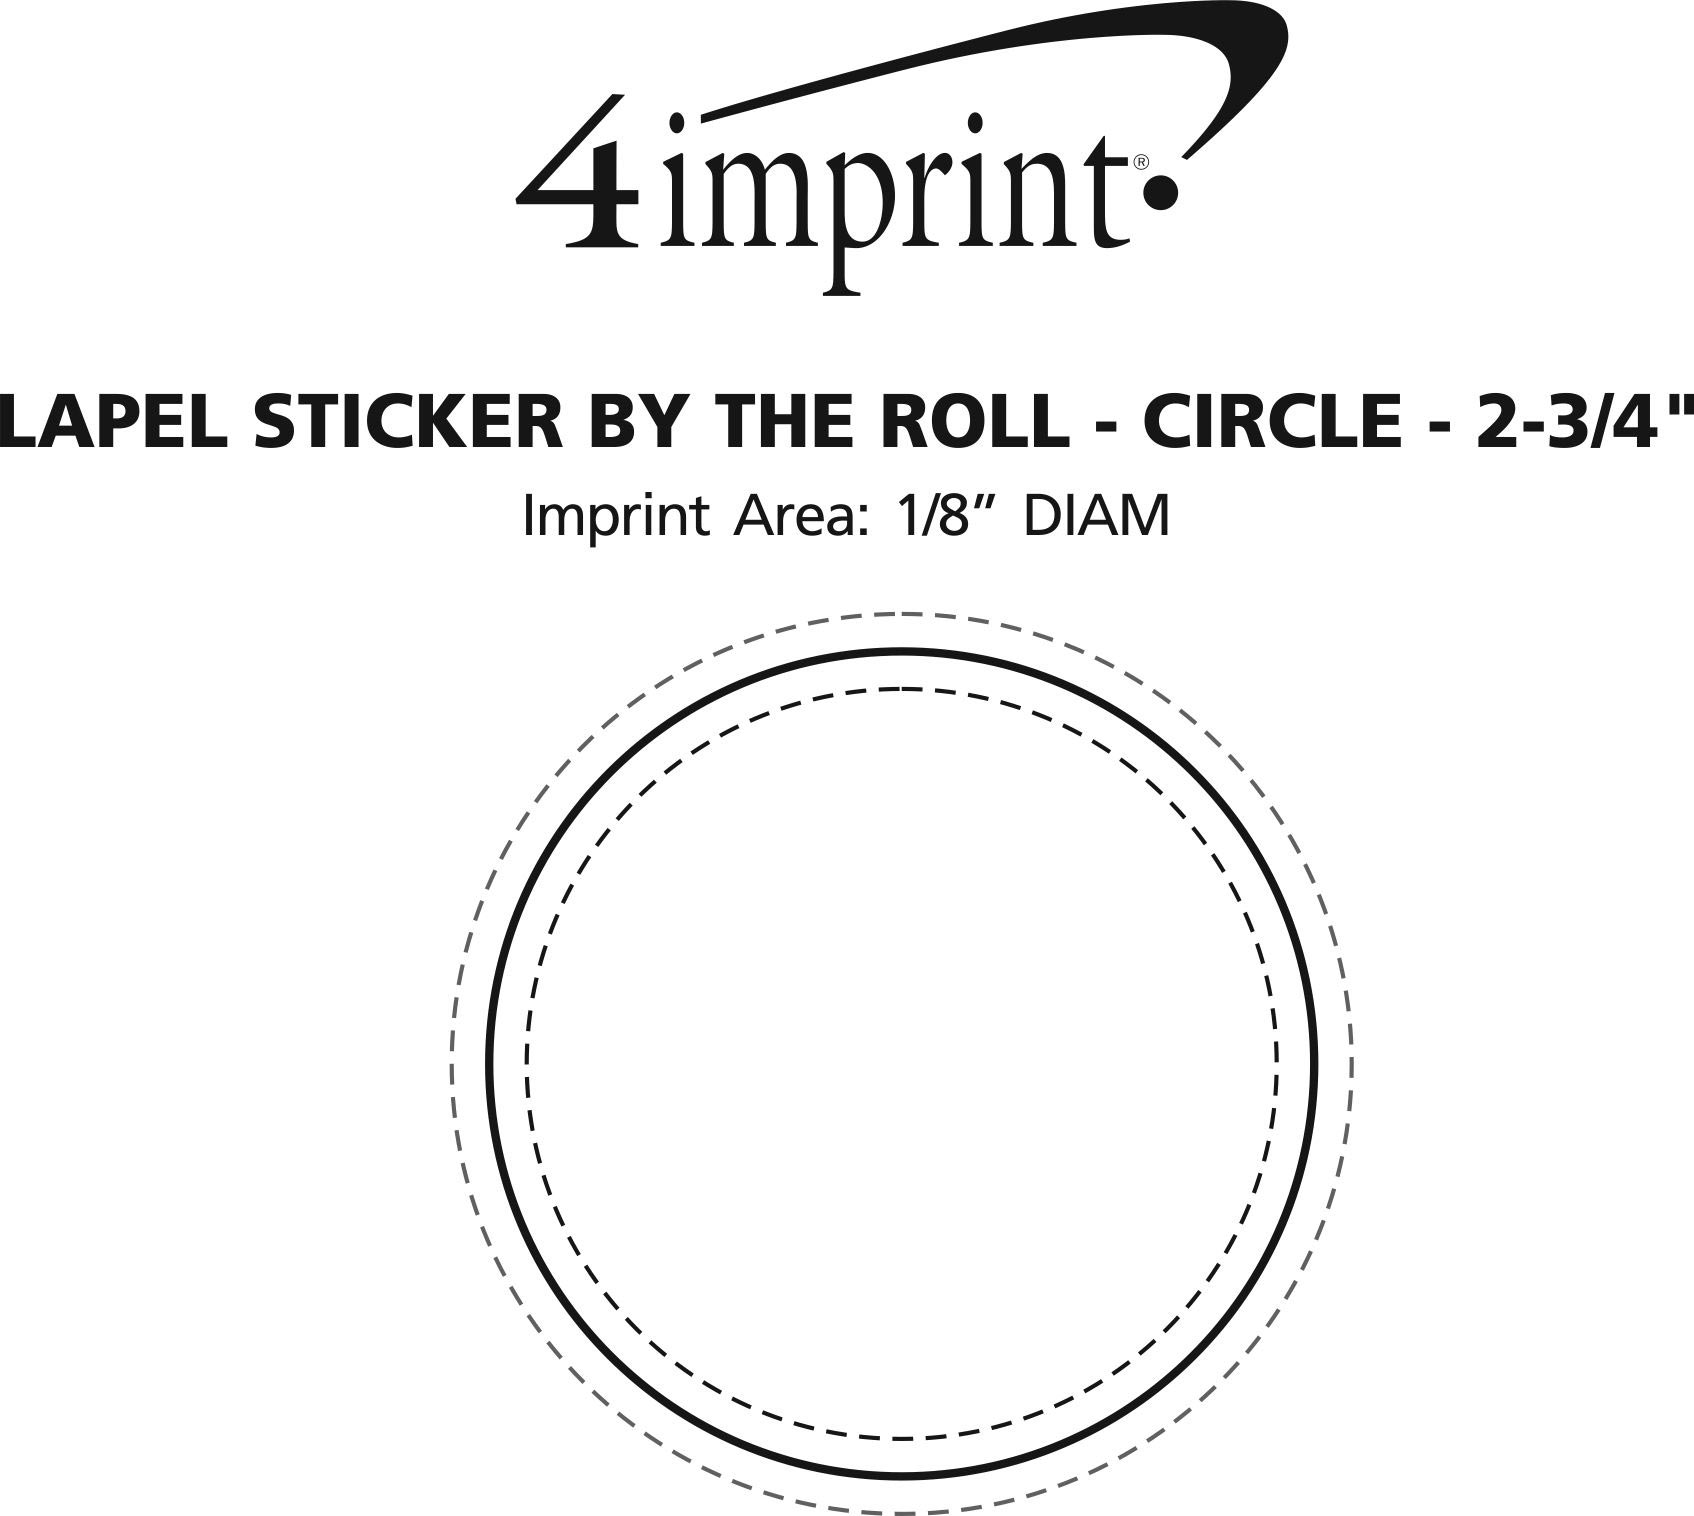 """Imprint Area of Lapel Sticker by the Roll - Circle - 2-3/4"""""""